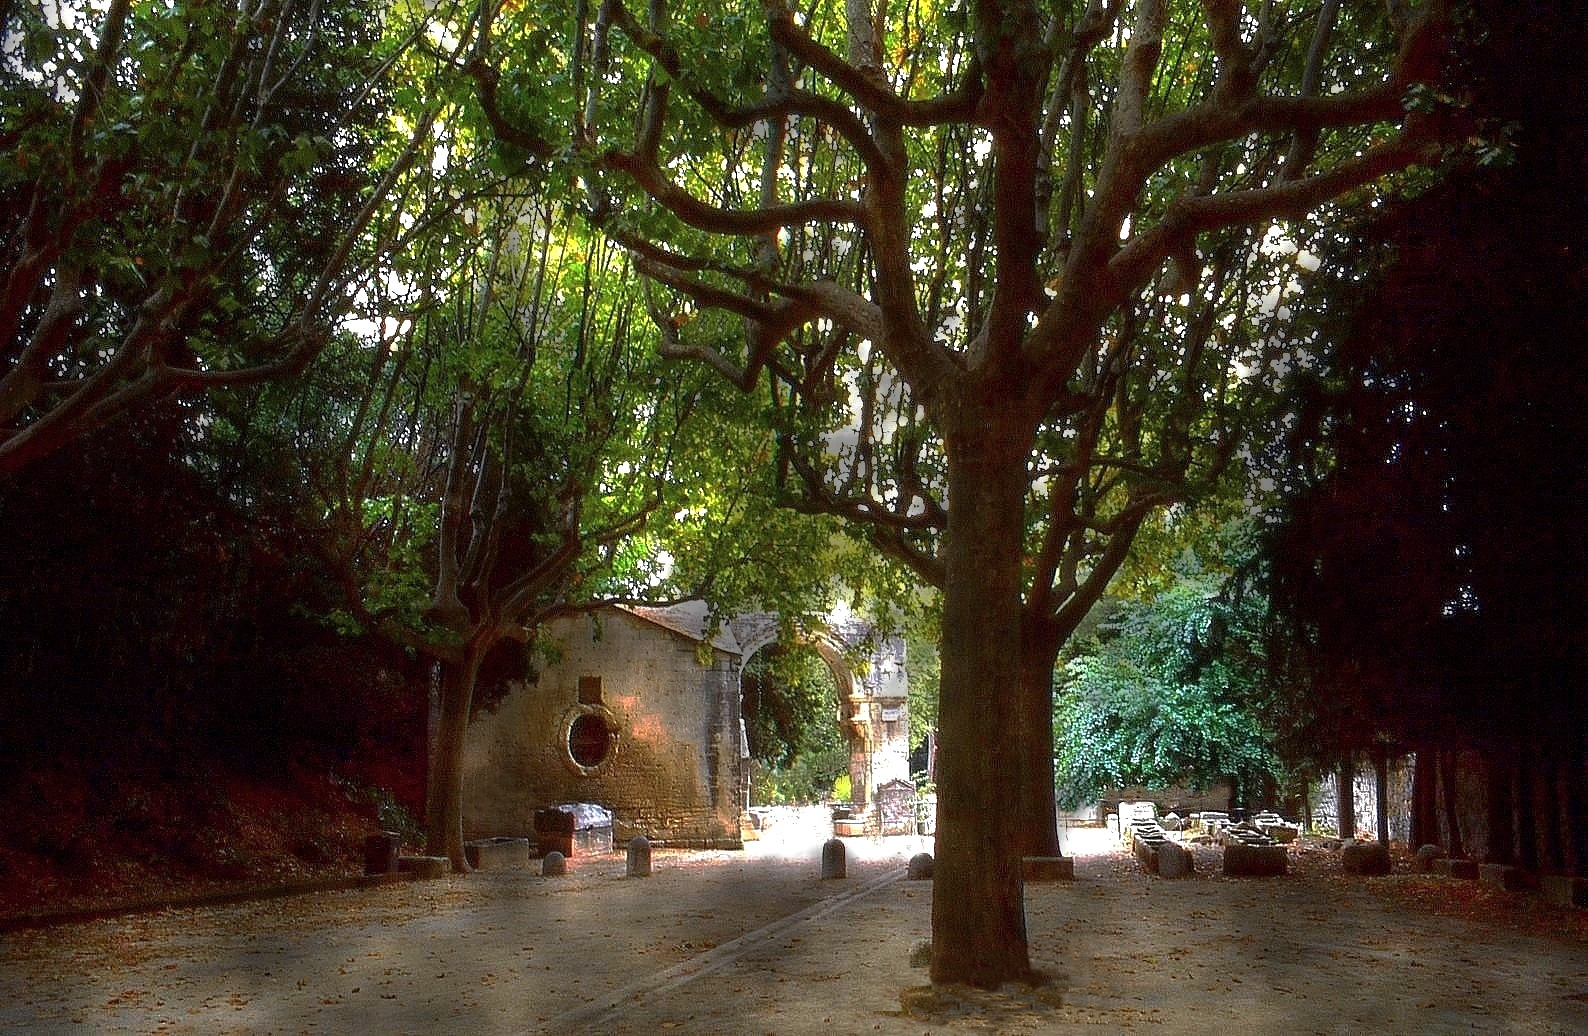 Les Alyscamps Arles